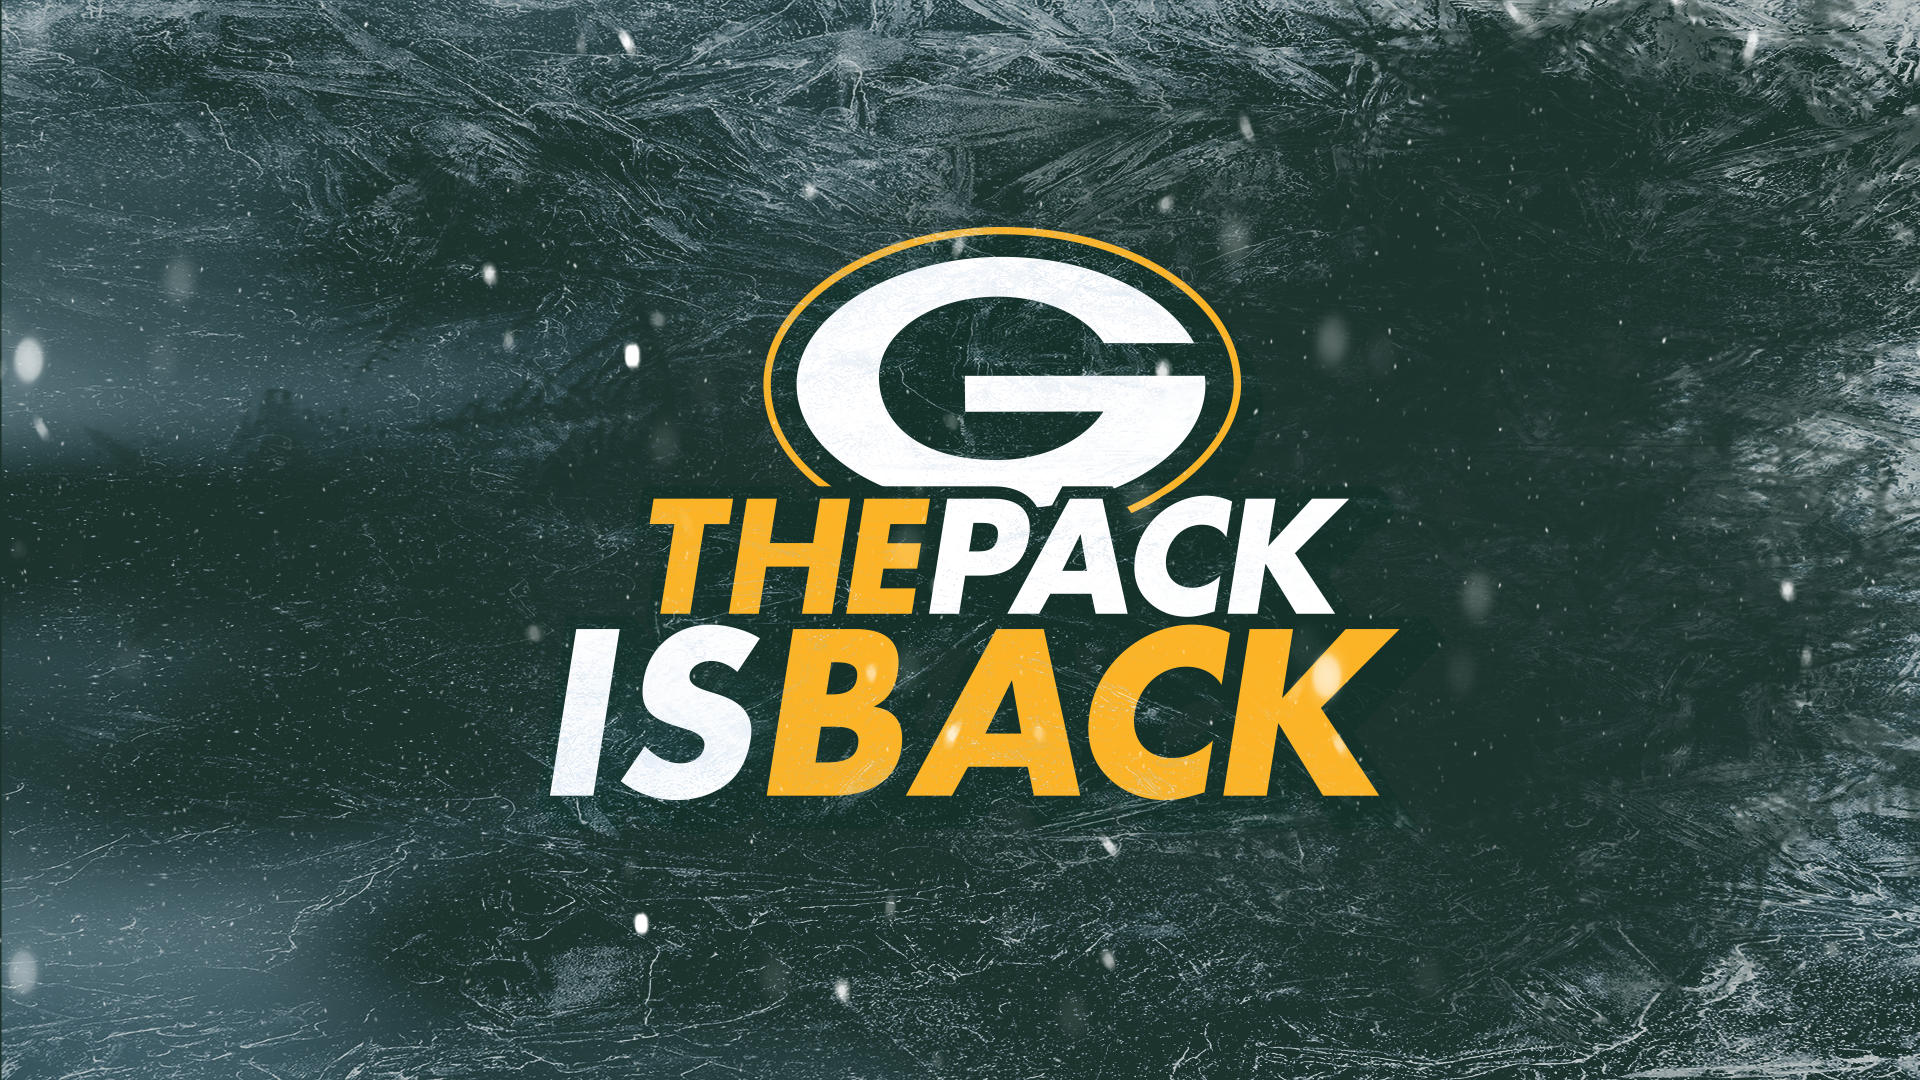 High Quality green bay packers Wallpaper – Enjoy The Game